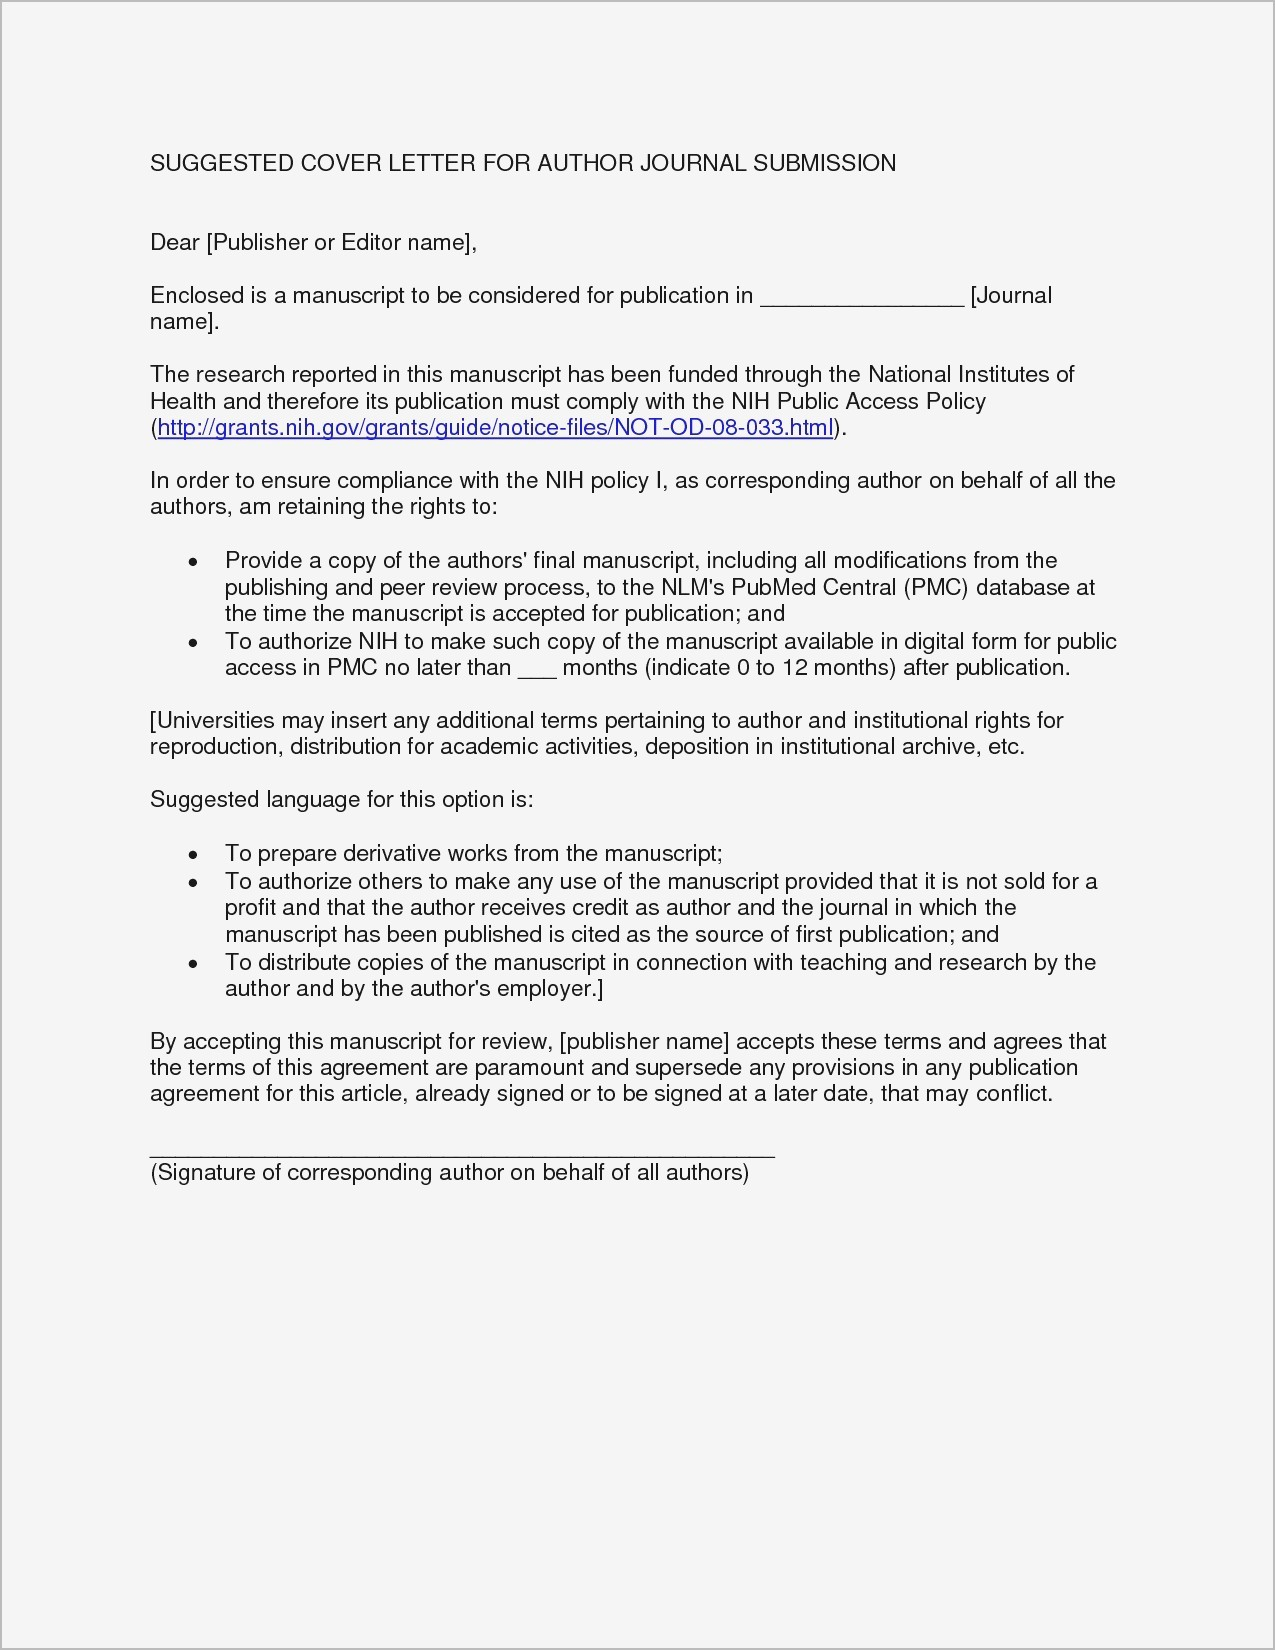 Submittal Cover Letter Template - Writing Business Requirements Template Best Fax Cover Letter